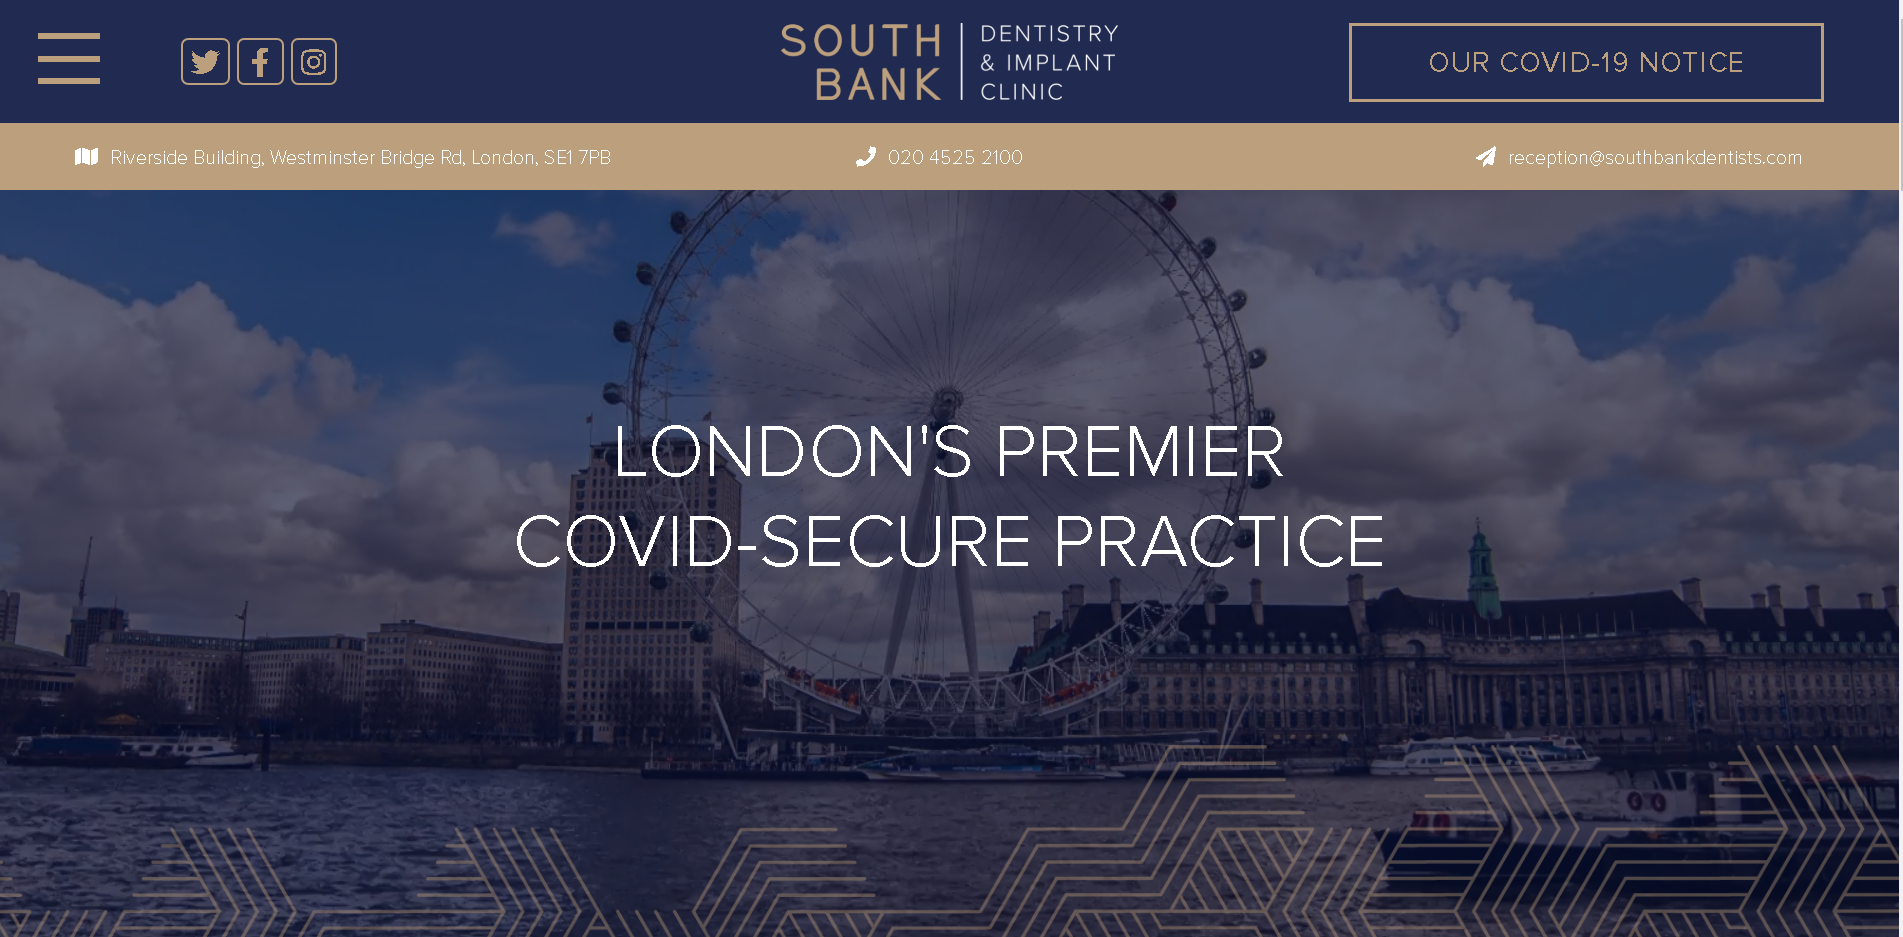 South Bank Dentistry and Implant Clinic